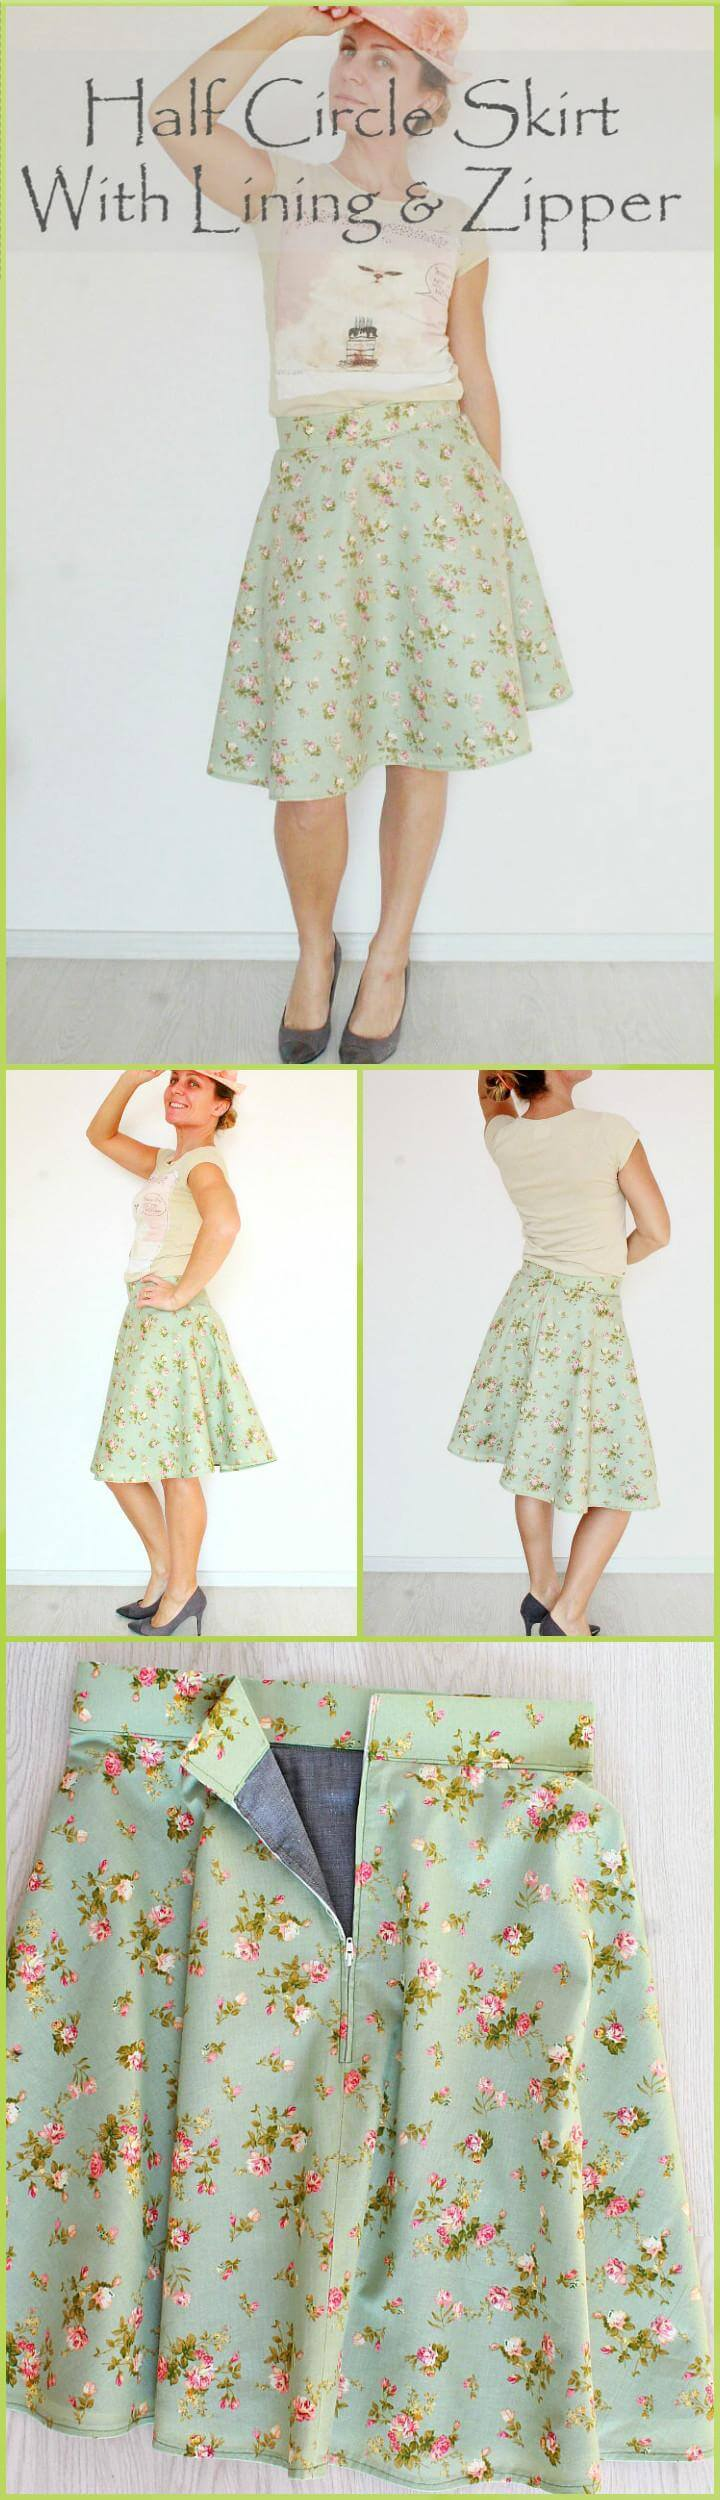 timeless half circle skirt with lining and zipper